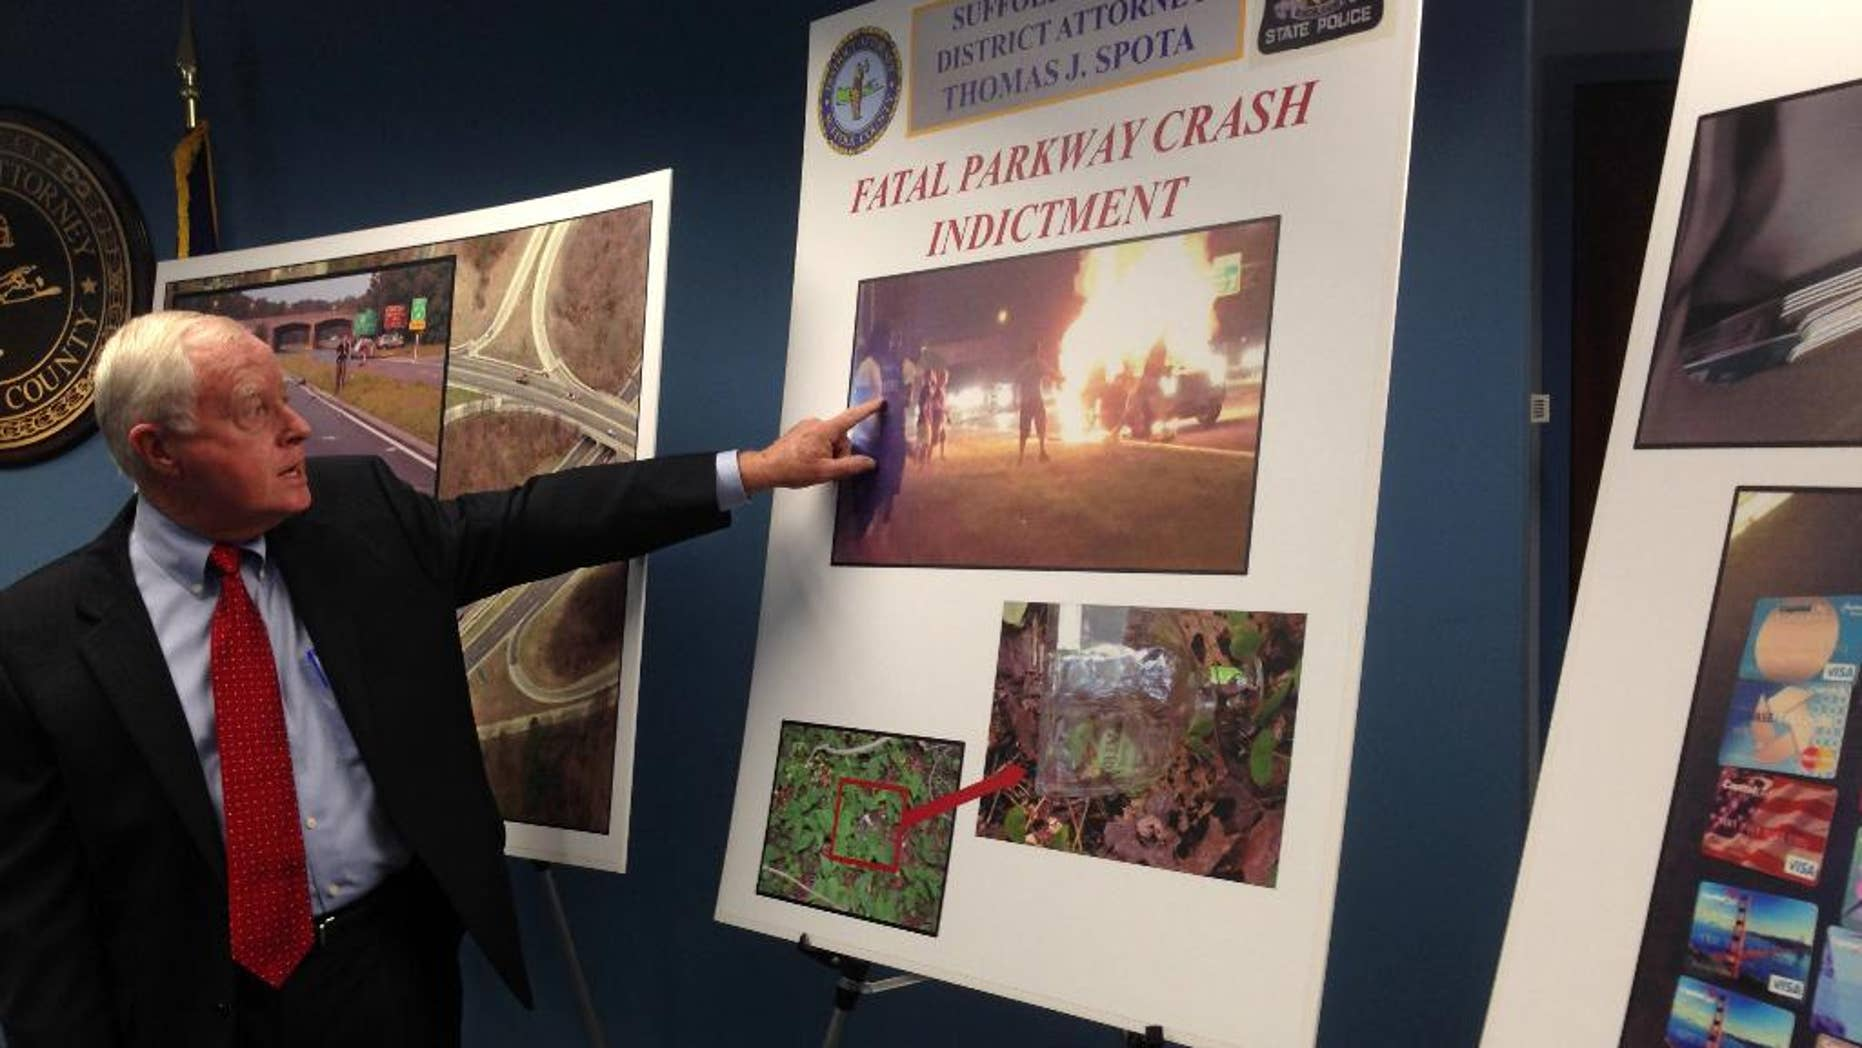 Suffolk County District Attorney Thomas J. Spota points to a photograph of the aftermath of a July 12, 2015, car crash on the Southern State Parkway that killed a father and his two children, Thursday, Aug. 27, 2015 in Hauppauge, N.Y. The prosecutor announced criminal charges Thursday against four people allegedly involved in the crash. All four have pleaded not guilty. (AP Photo/Frank Eltman)